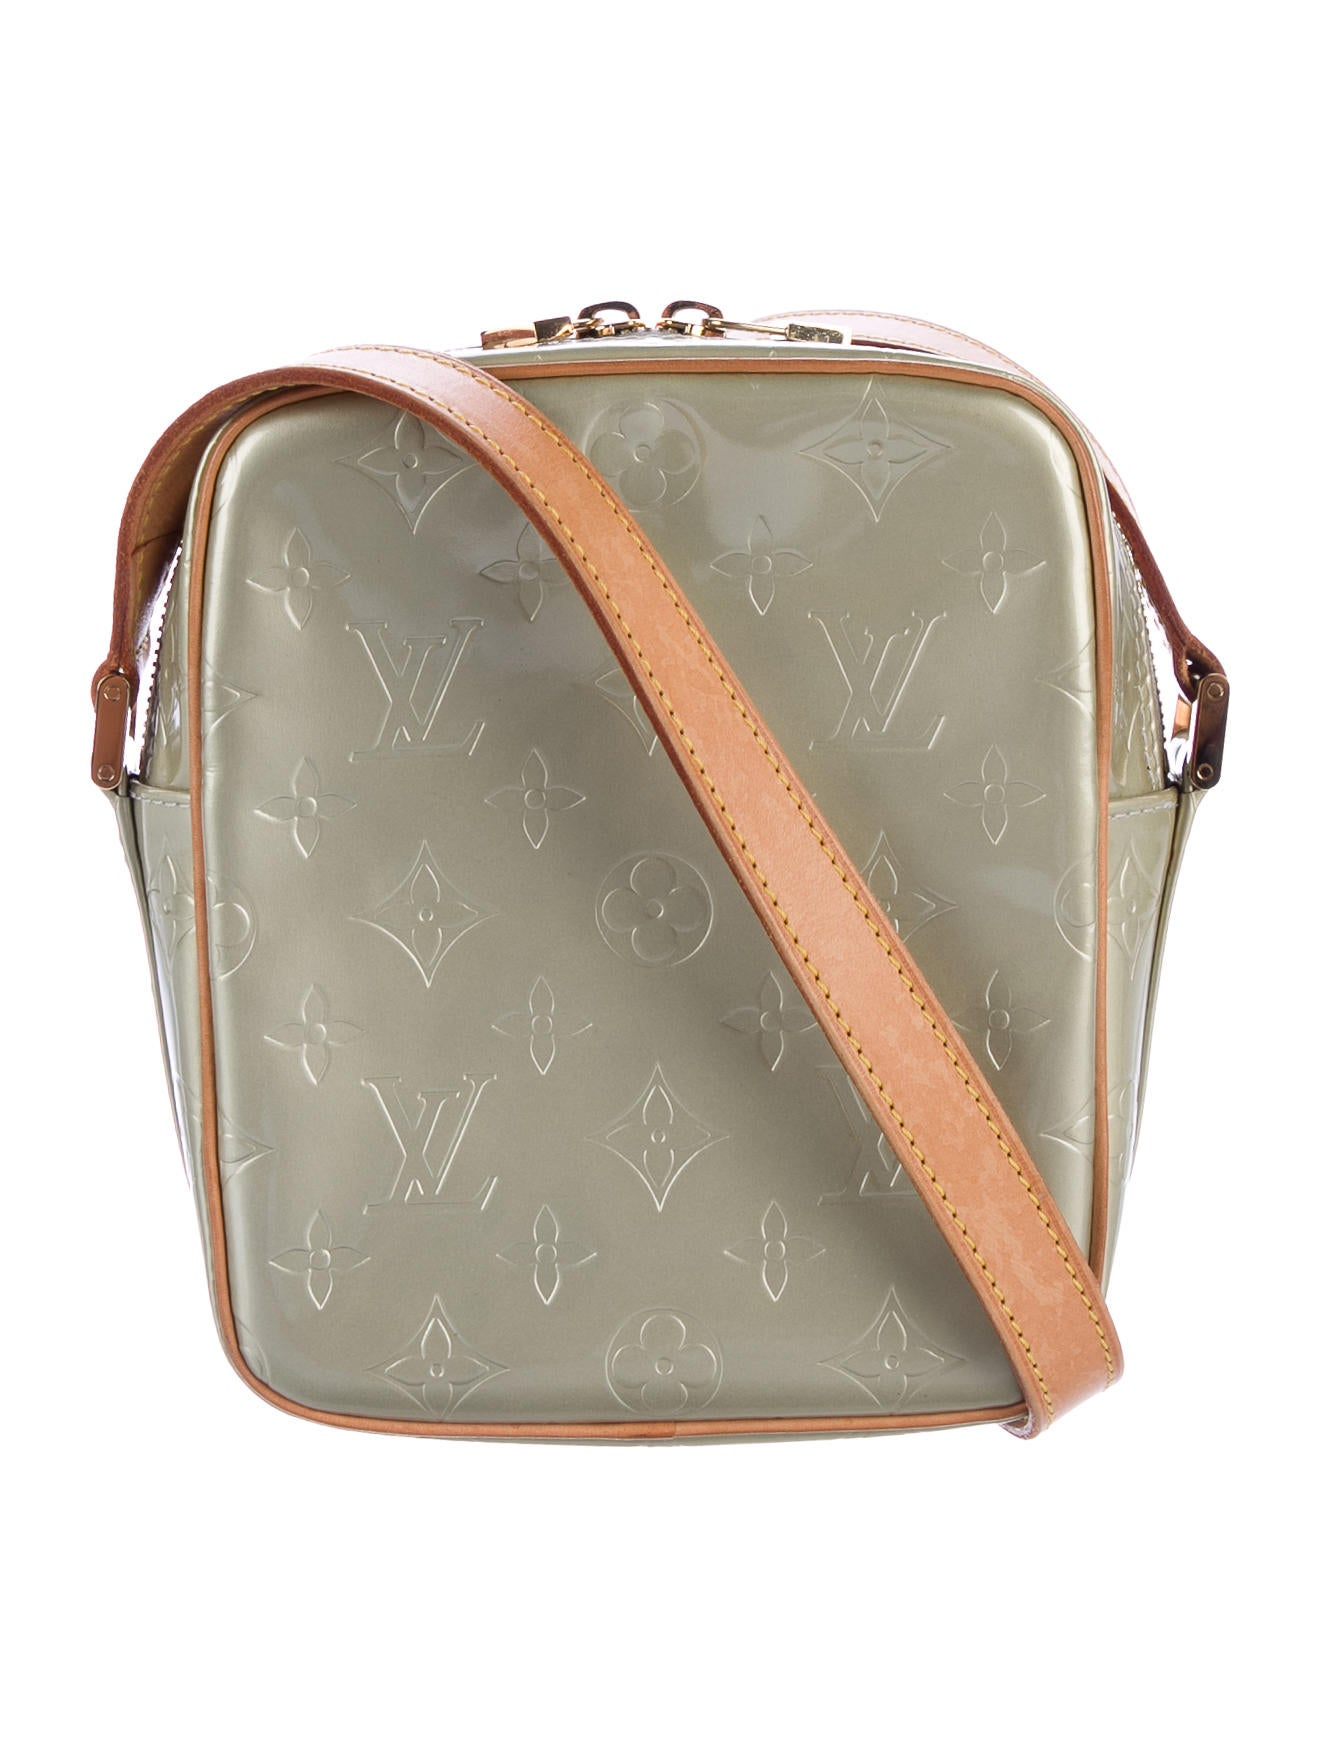 Louis vuitton vernis wooster bag handbags lou126853 for Louis vuitton miroir bags